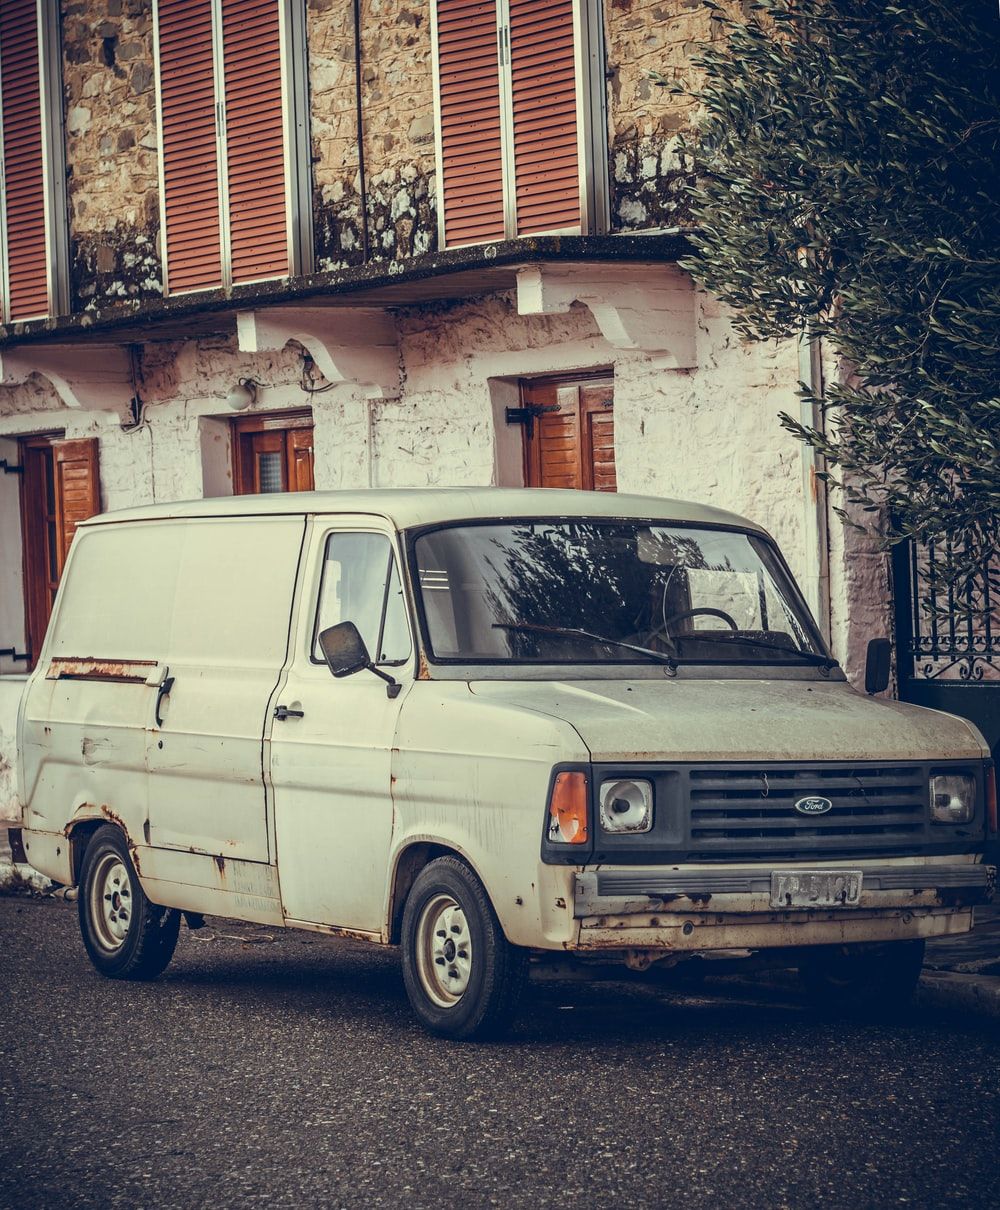 white Ford van parked outdoor